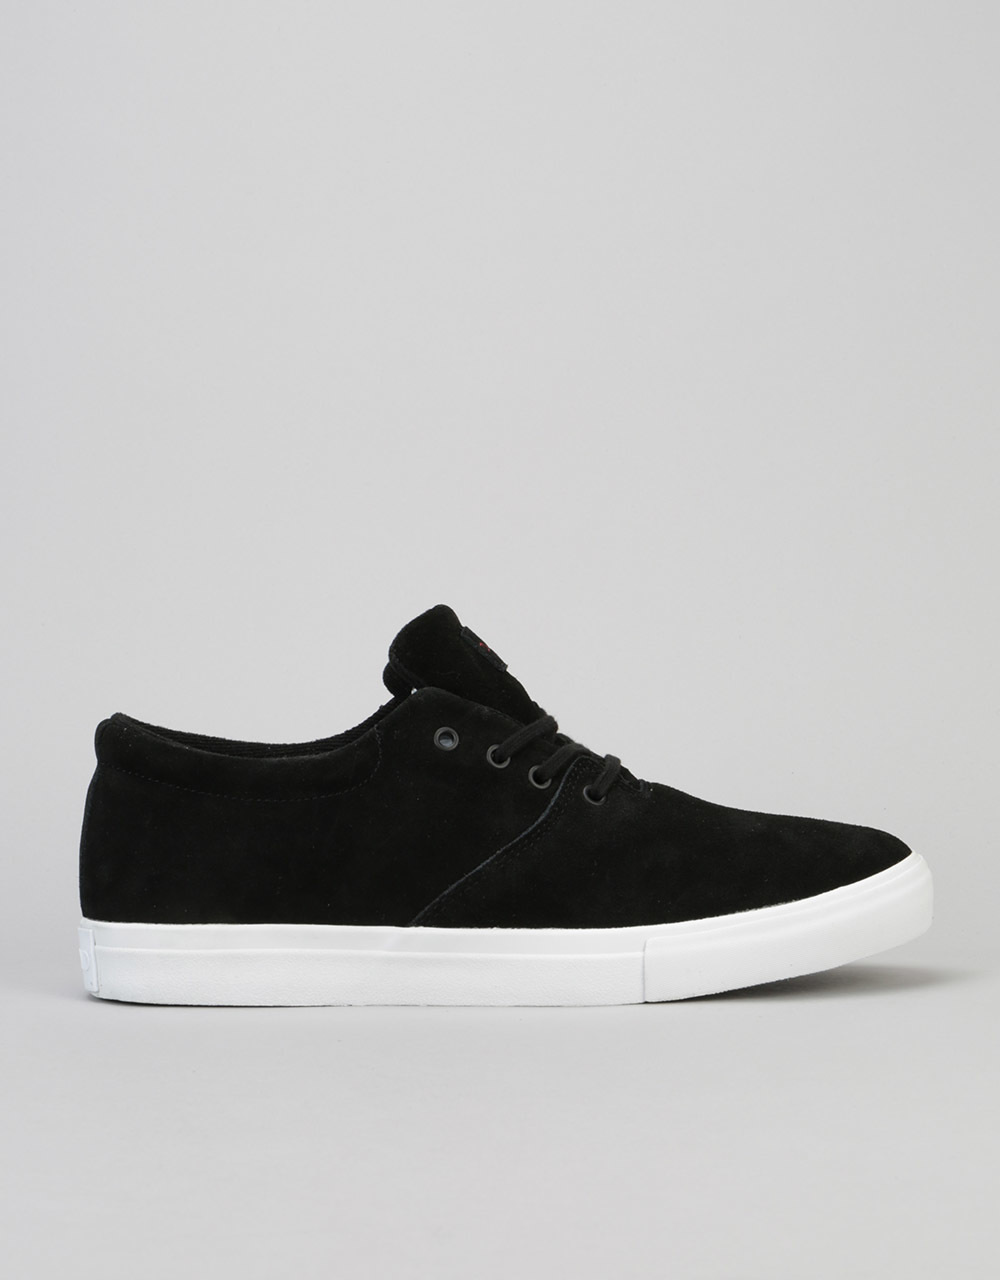 ee9b177e76 Diamond Supply Co. Torey Skate Shoes - Black Suede